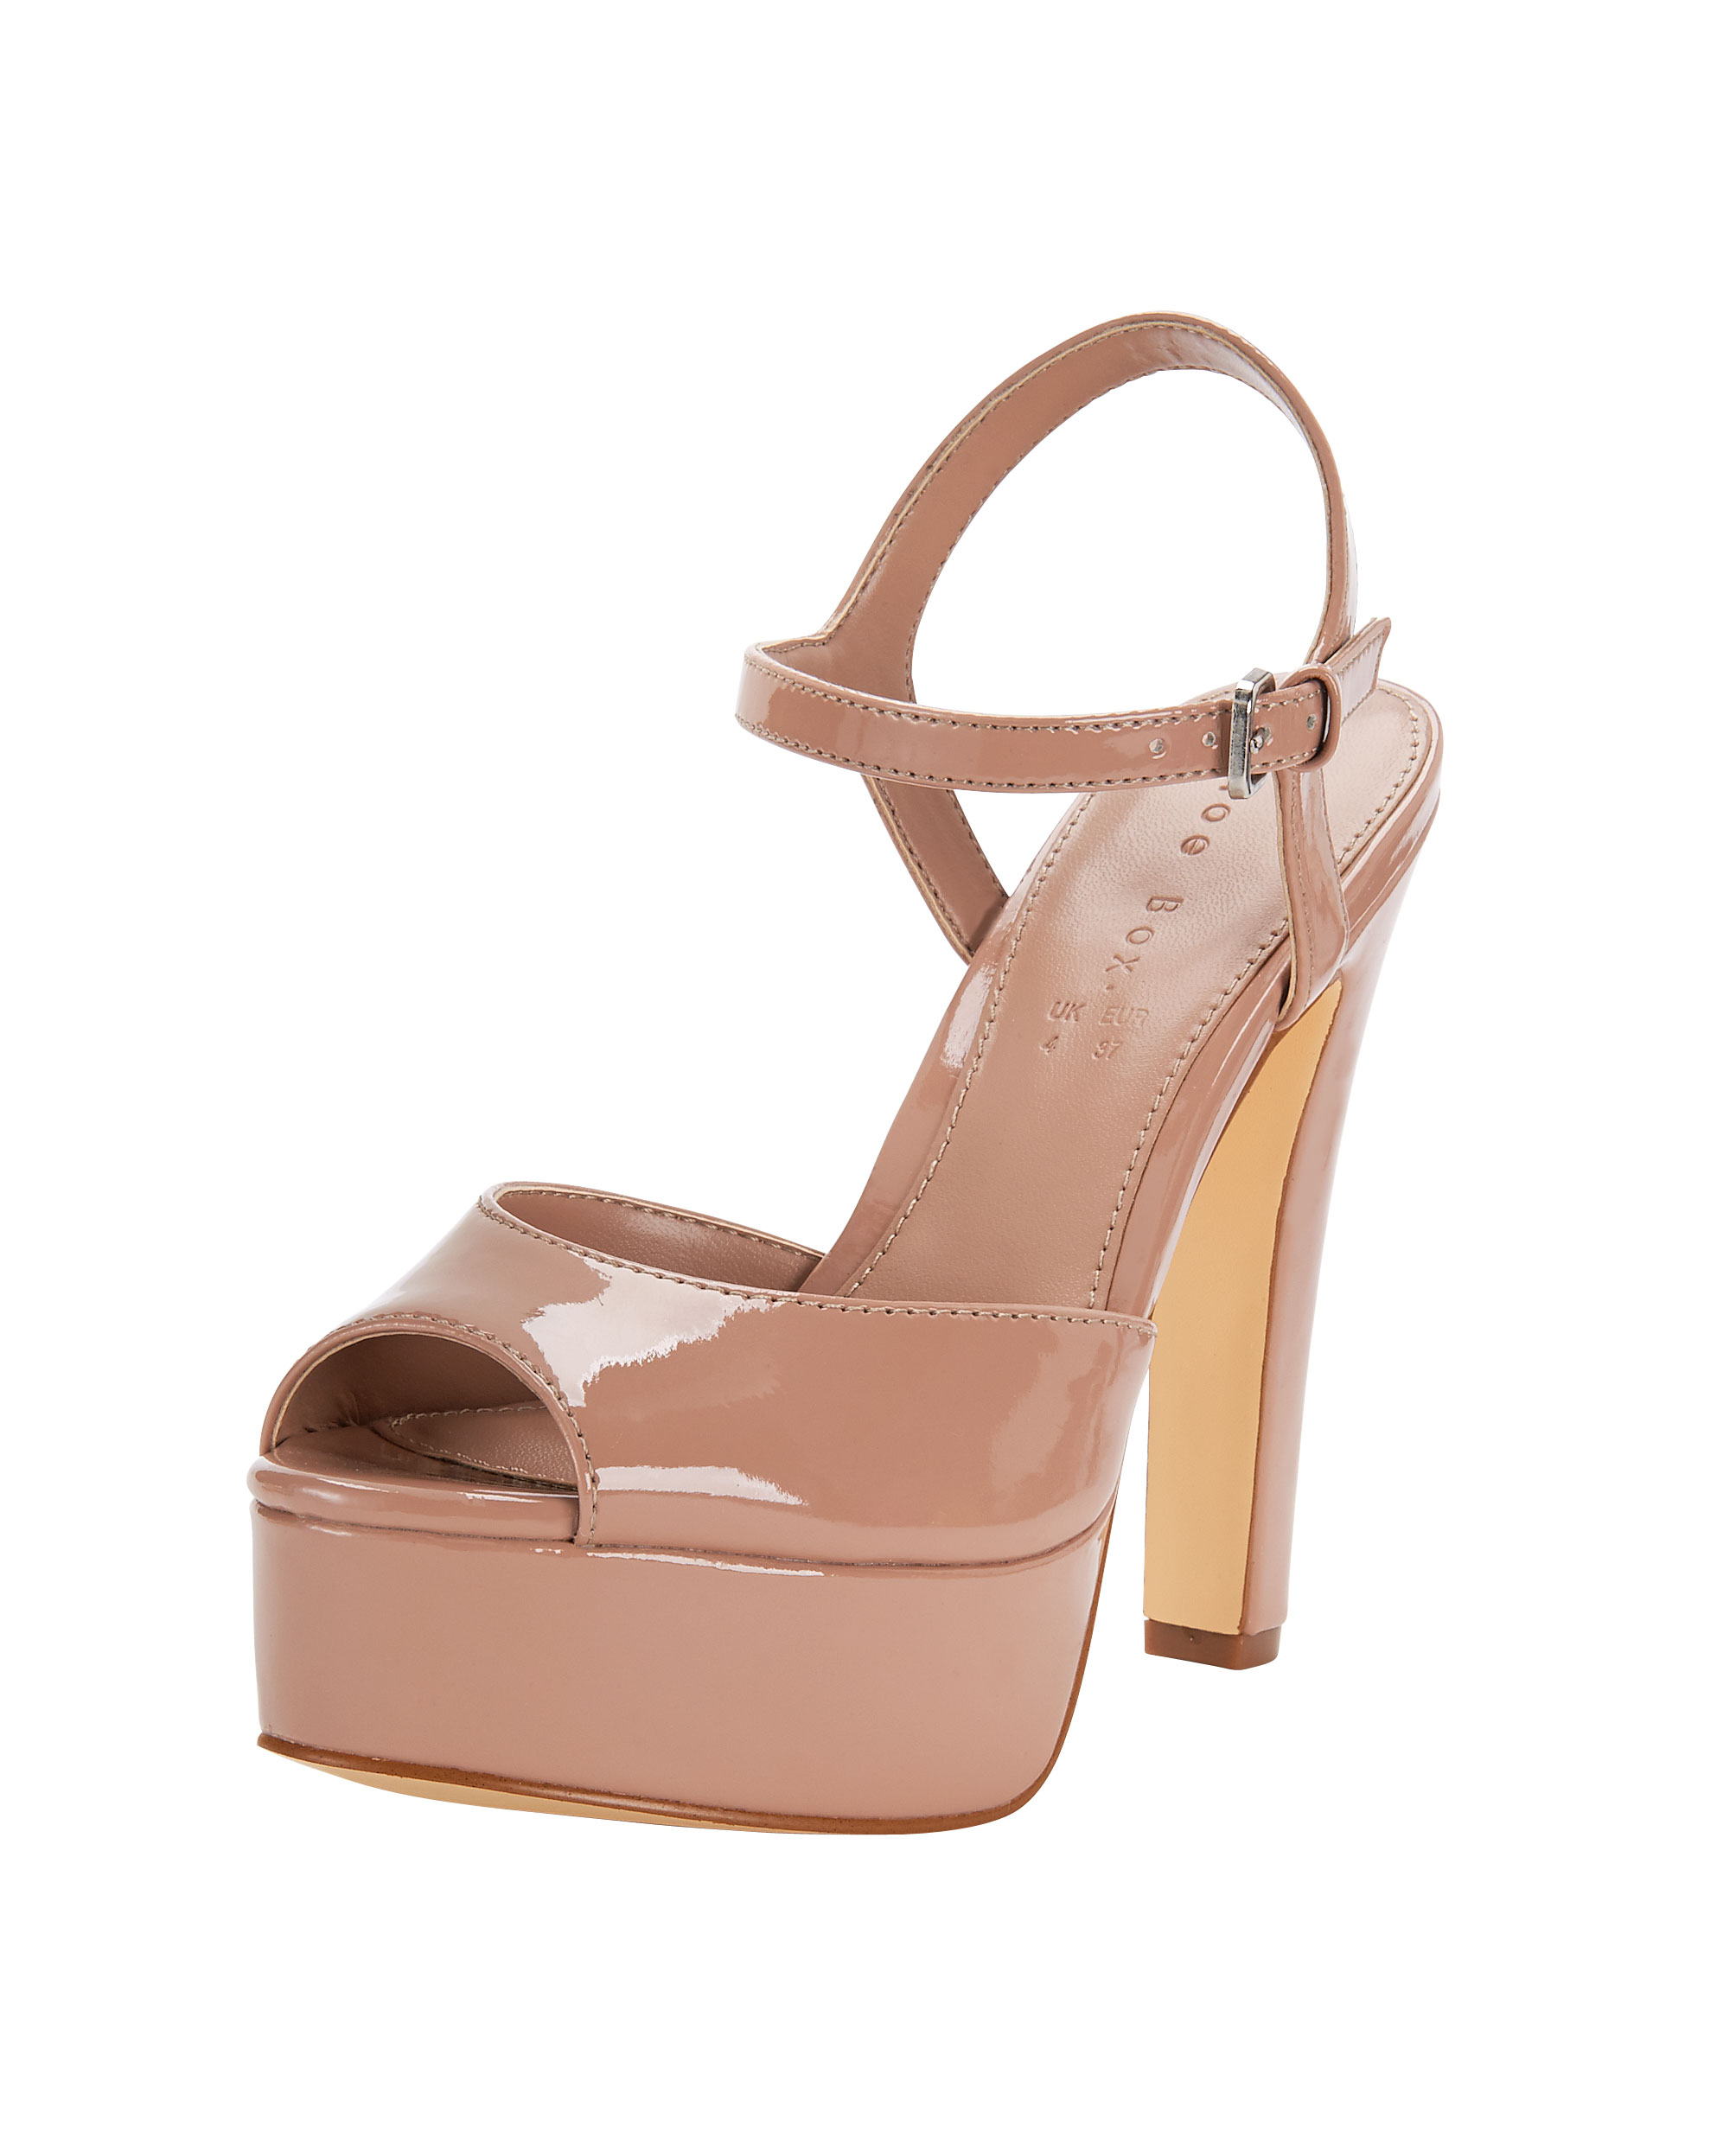 Shoe Box Gina Platform Sandals